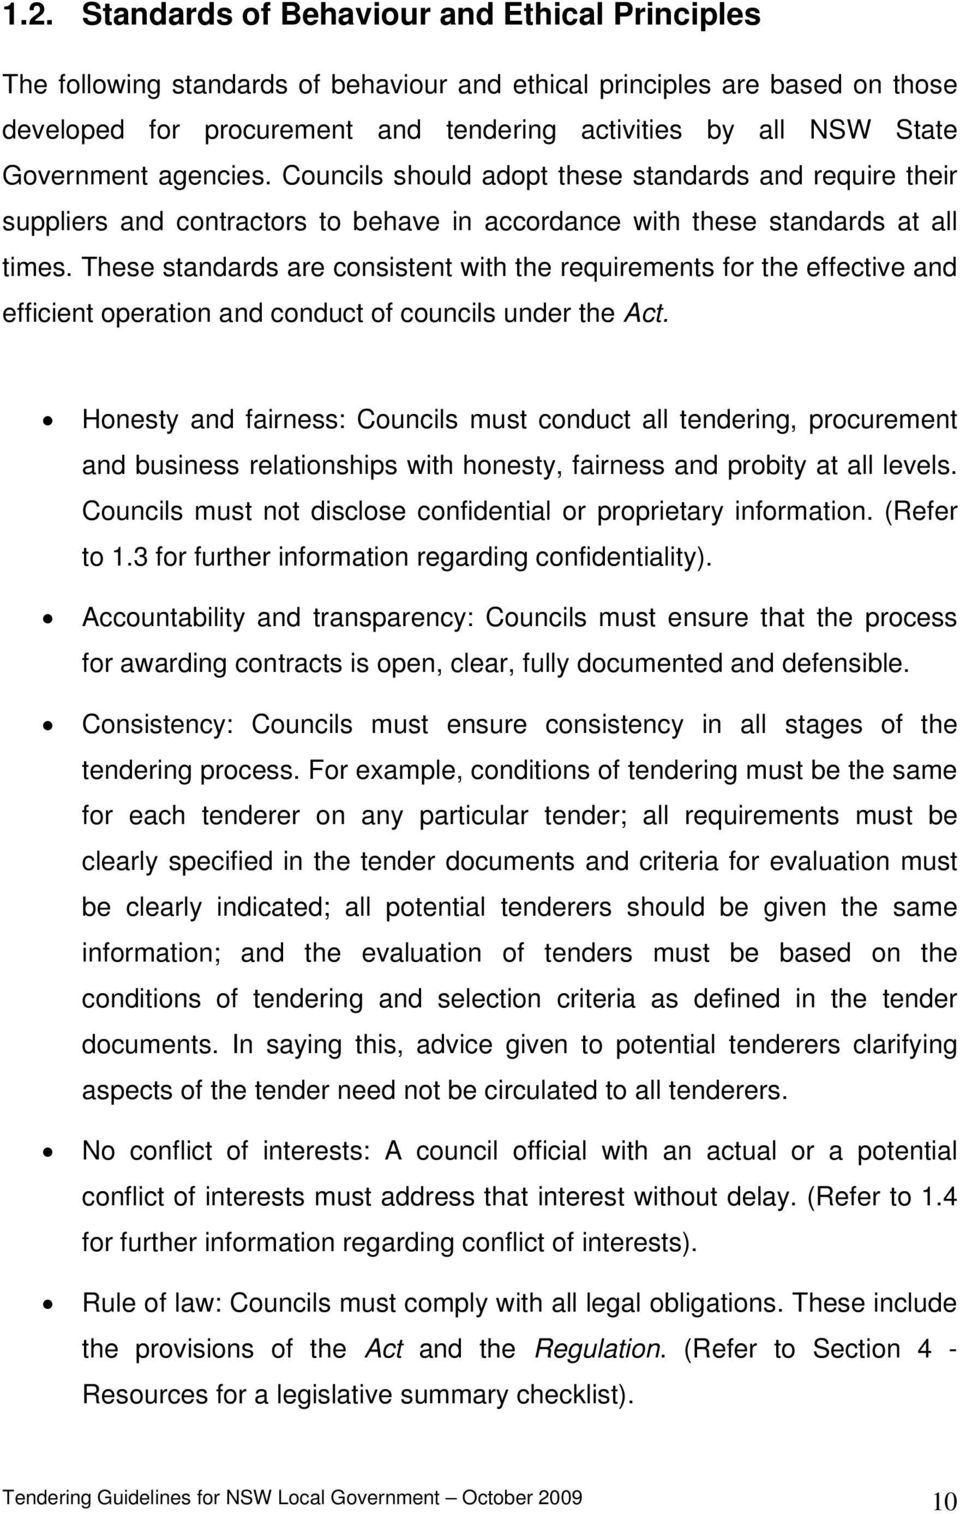 These standards are consistent with the requirements for the effective and efficient operation and conduct of councils under the Act.